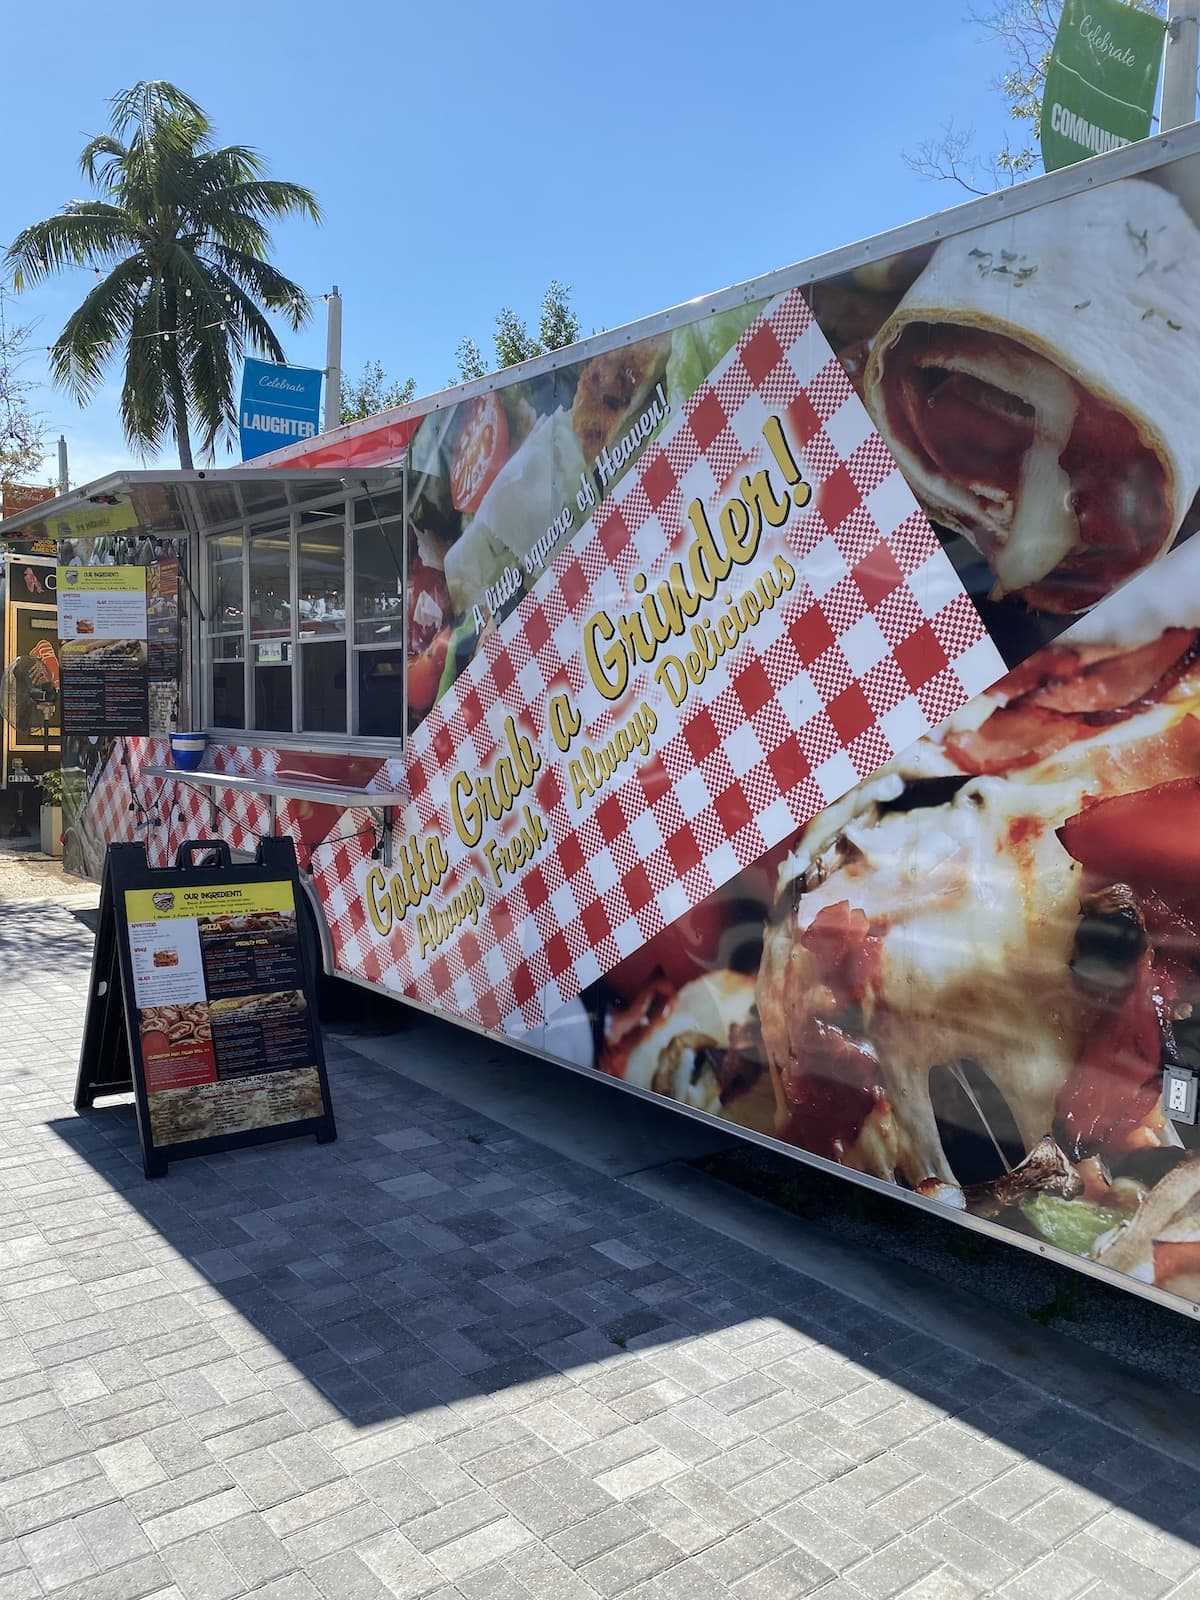 Naples food trucks is one of the top things to do in Naples.